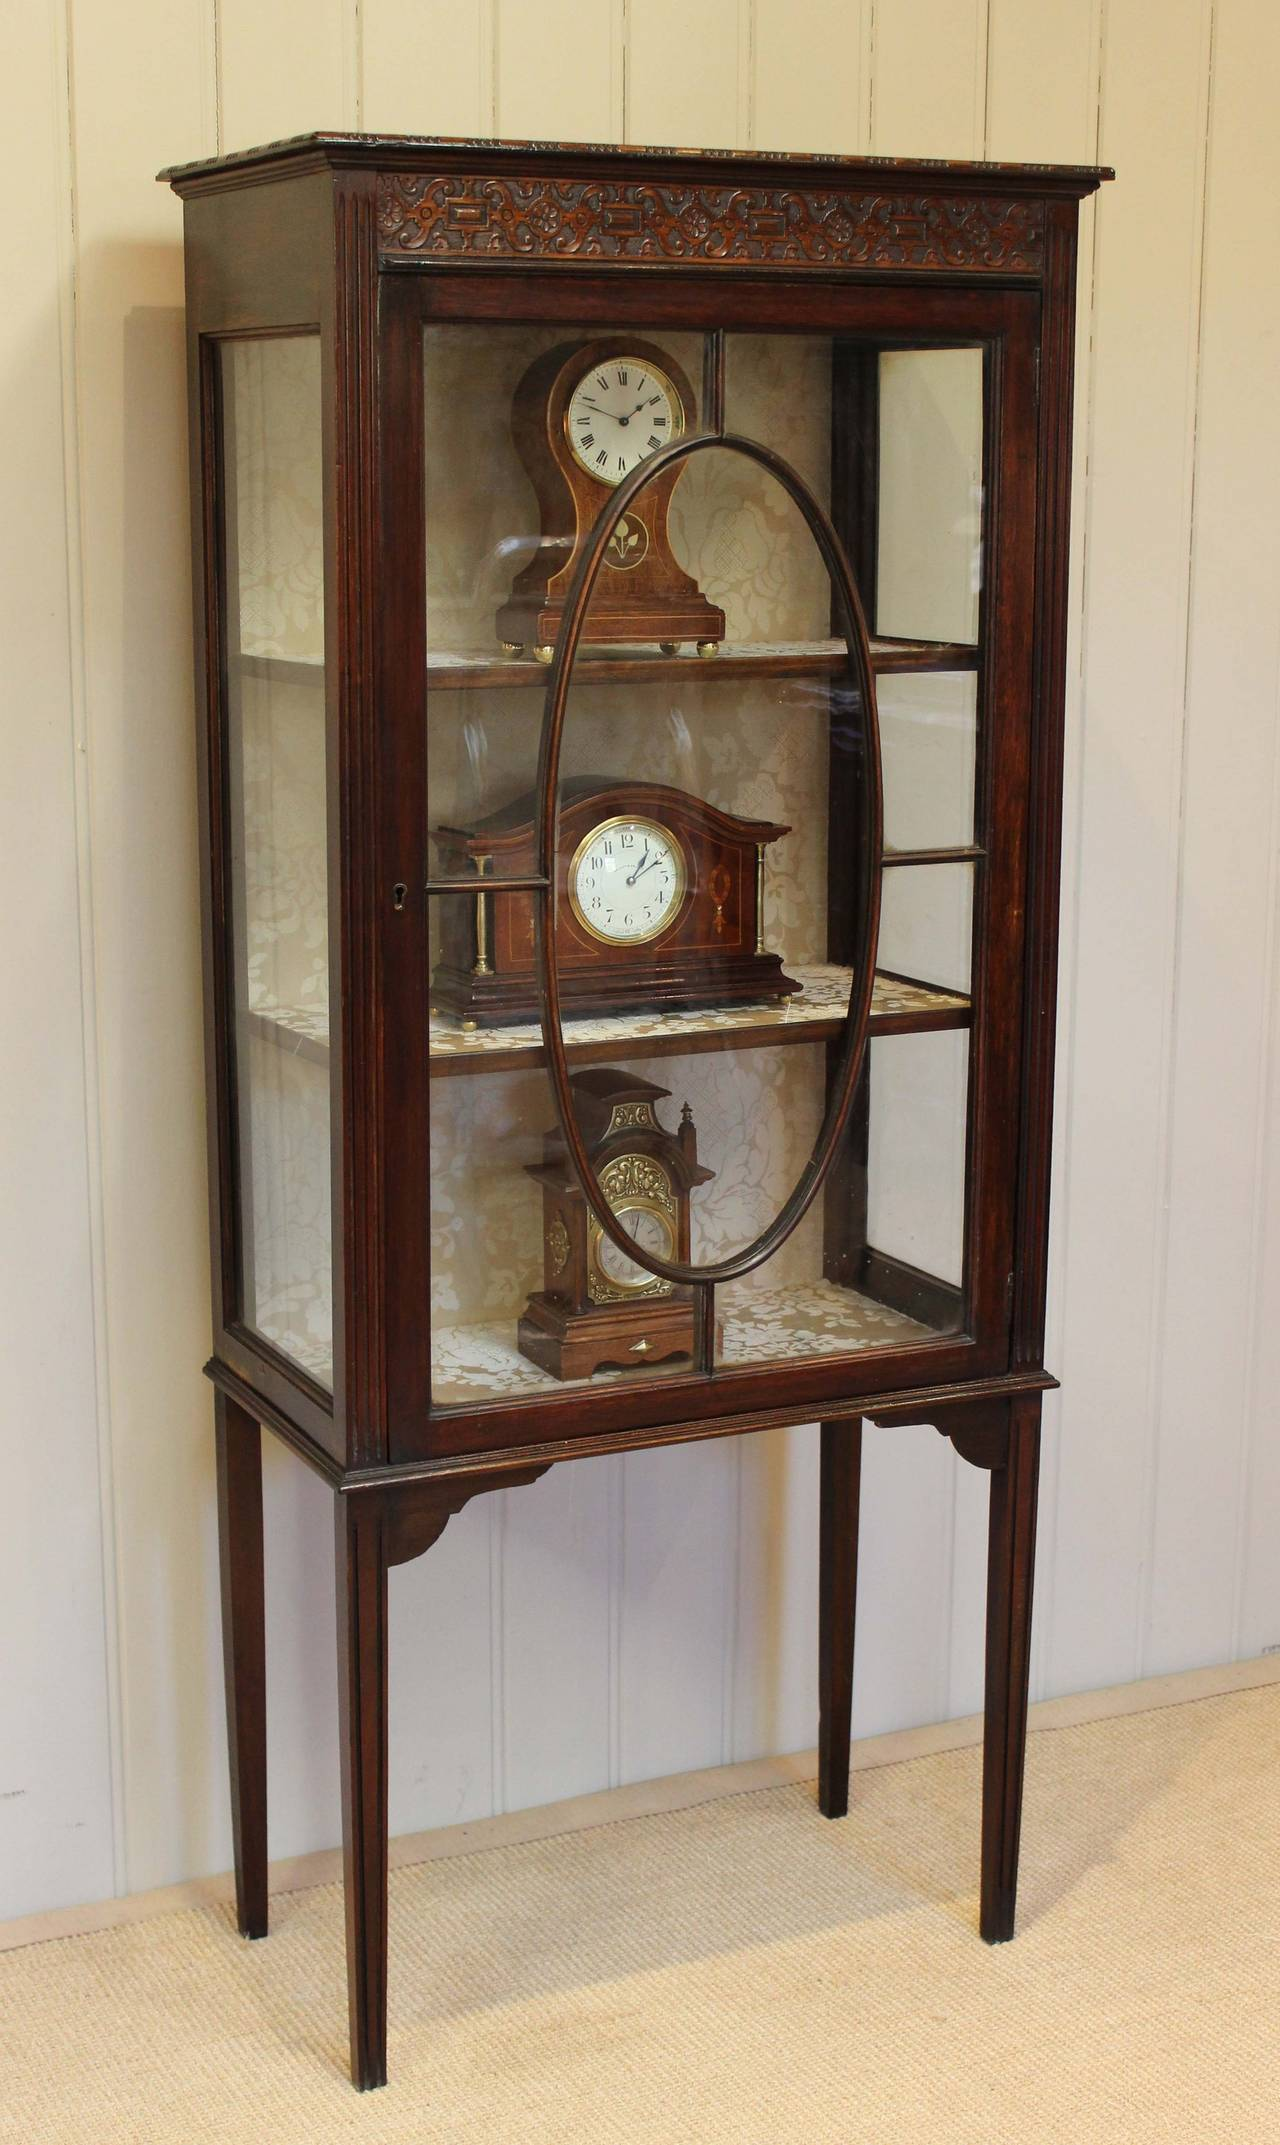 #8B7040 Mahogany Display Cabinet At 1stdibs with 1280x2145 px of Recommended Mahogany Display Cabinets With Glass Doors 21451280 save image @ avoidforclosure.info